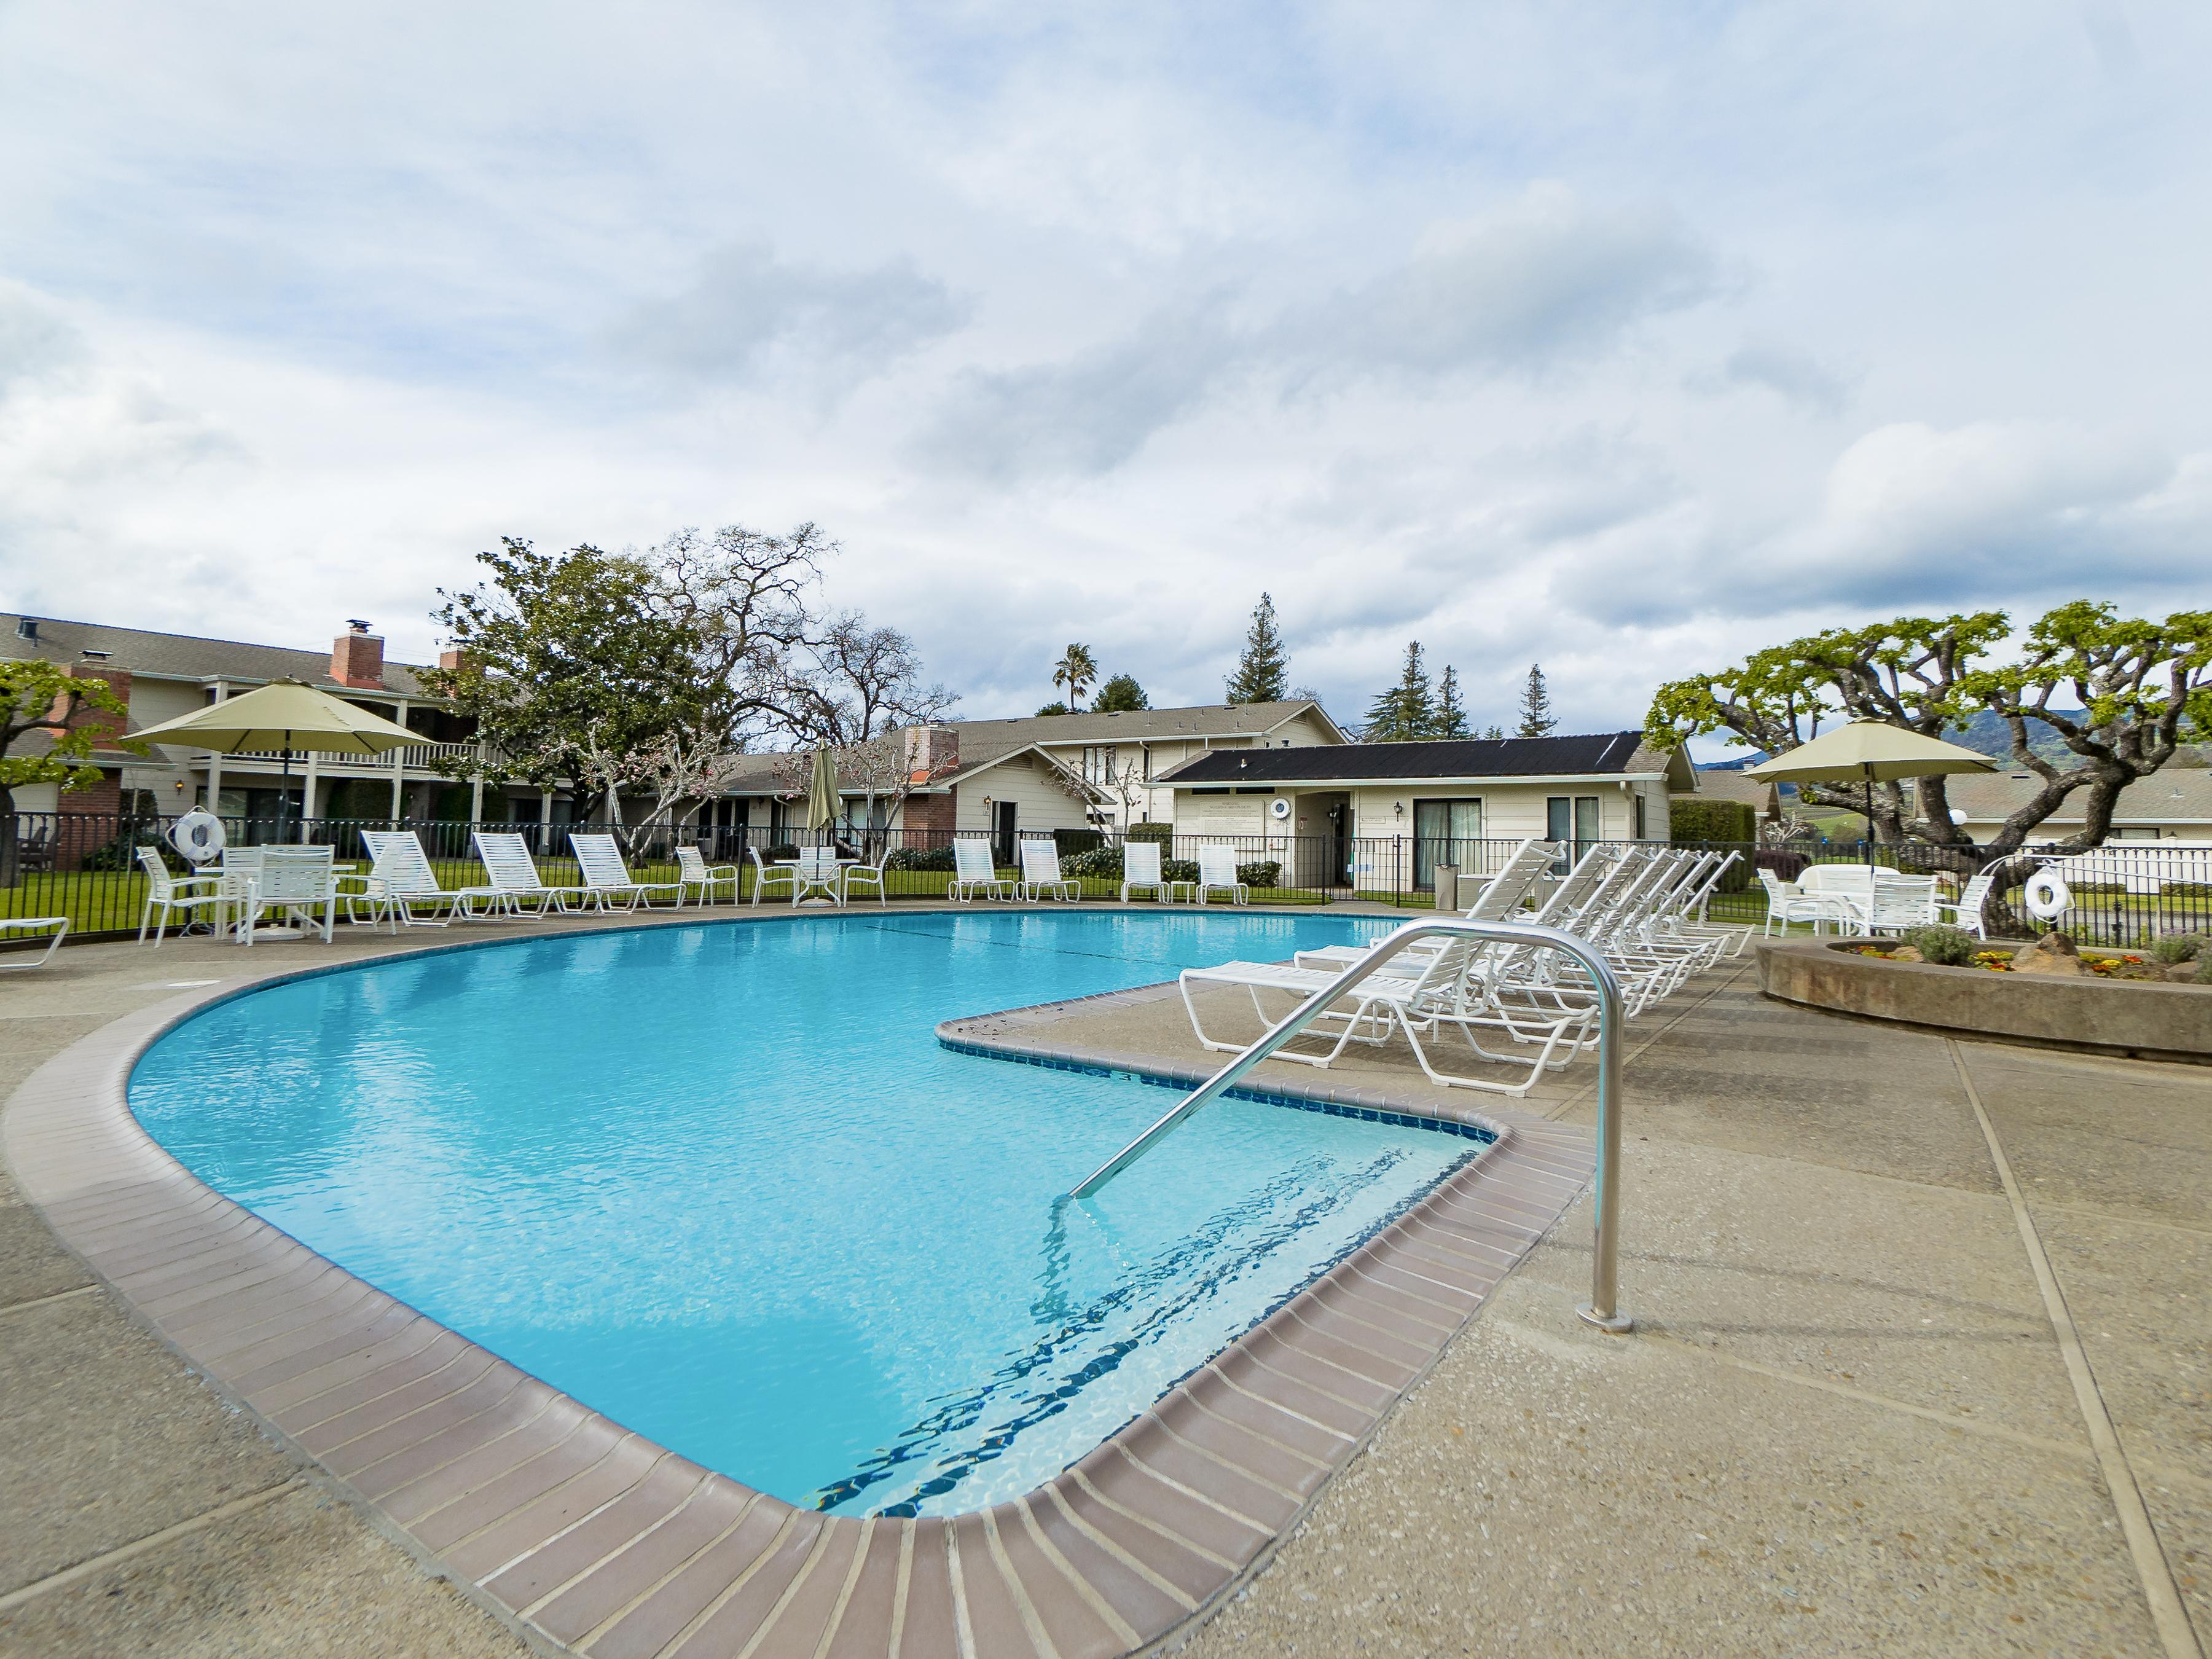 The shared community pool is a quick walk from your rental.